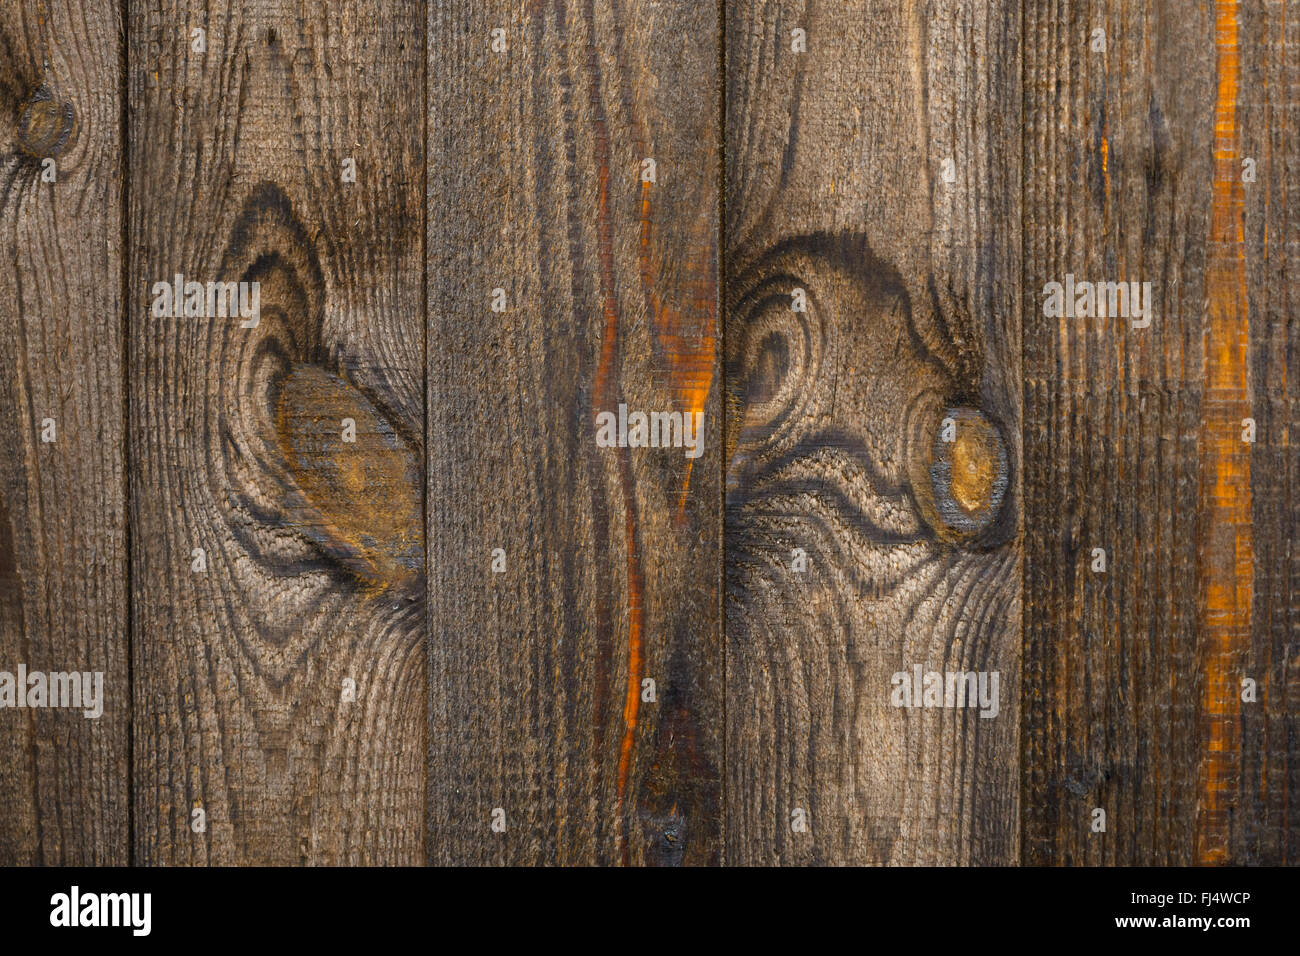 fragment of an old brown wooden fence texture - Stock Image